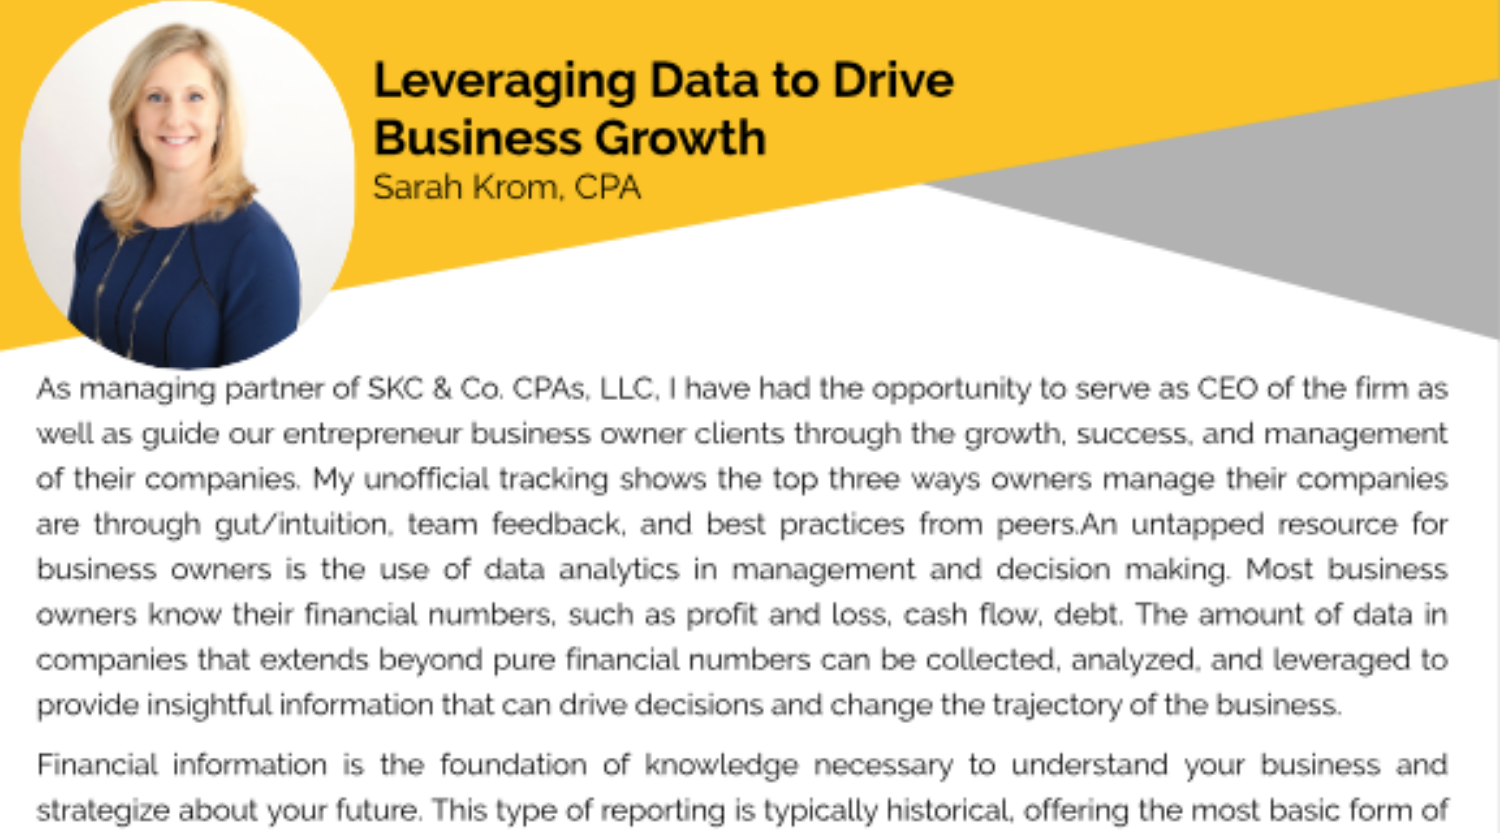 Leveraging Data to Drive Business Growth